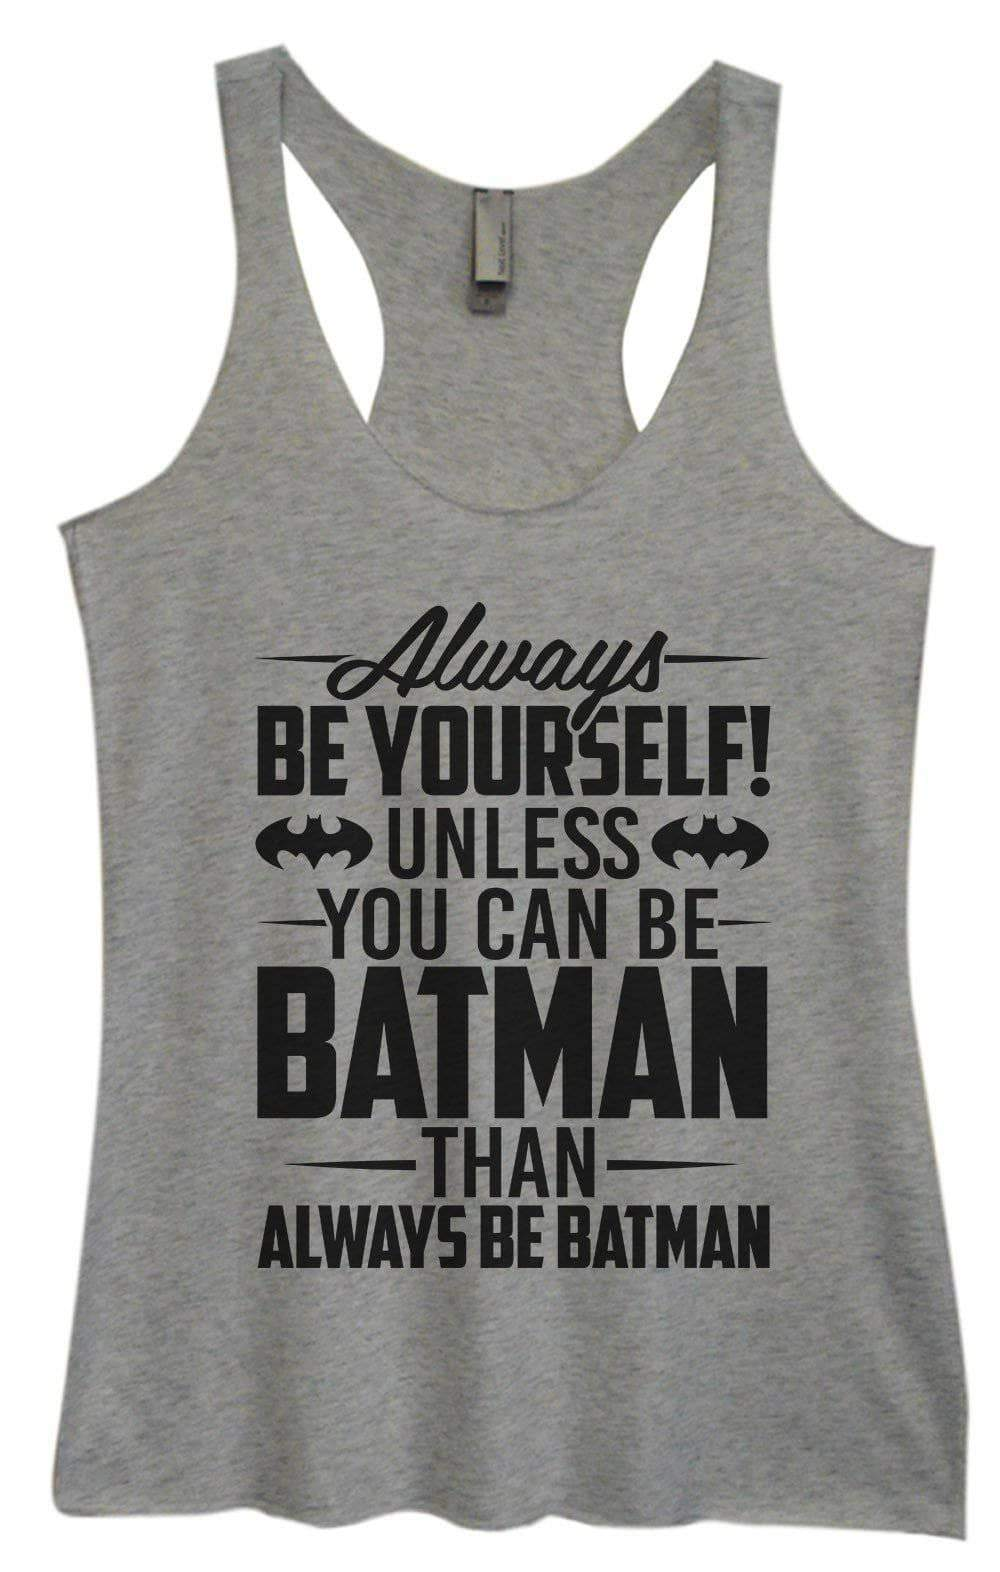 Womens Tri-Blend Tank Top - Always Be Yourself Unless You Can Be Batman Then Always Be Batman Small Womens Tank Tops Vintage Grey